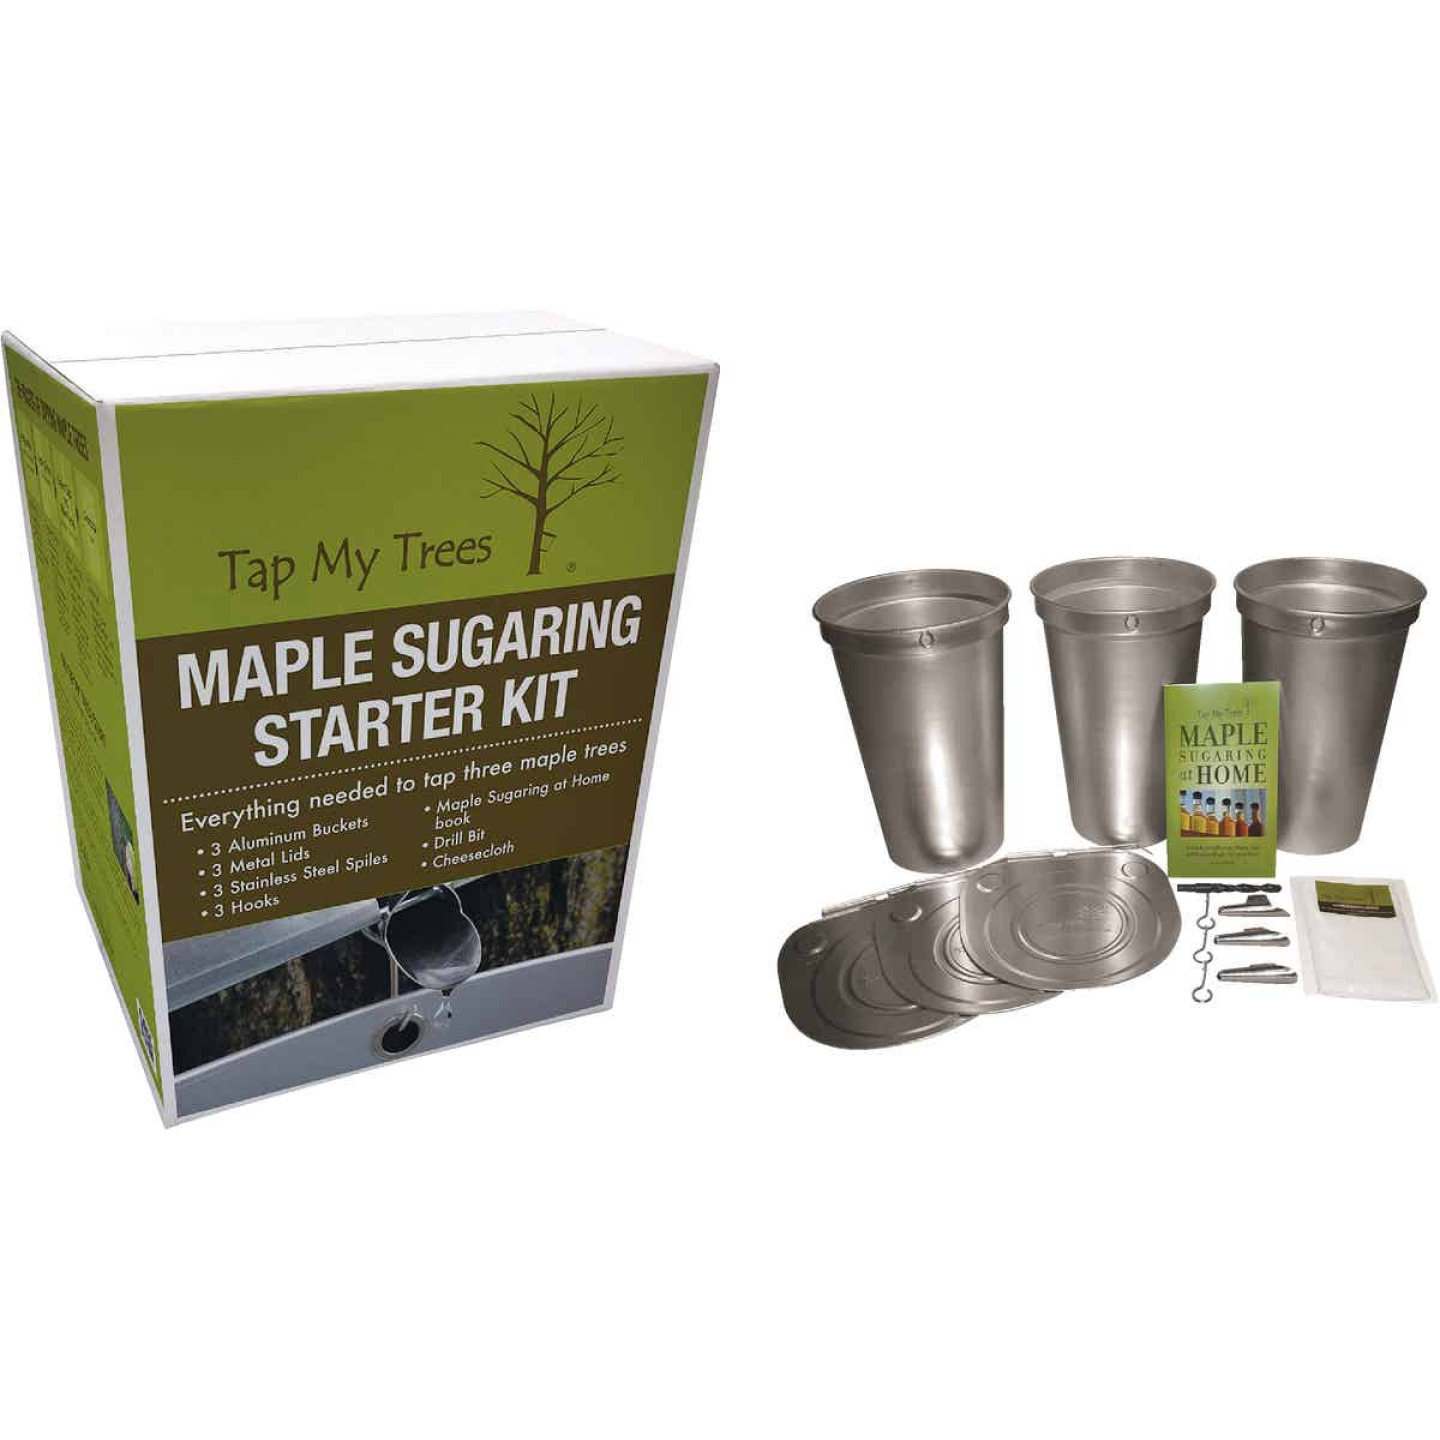 Tap My Trees Maple Sugaring Aluminum & Stainless Steel Starter Kit Image 1